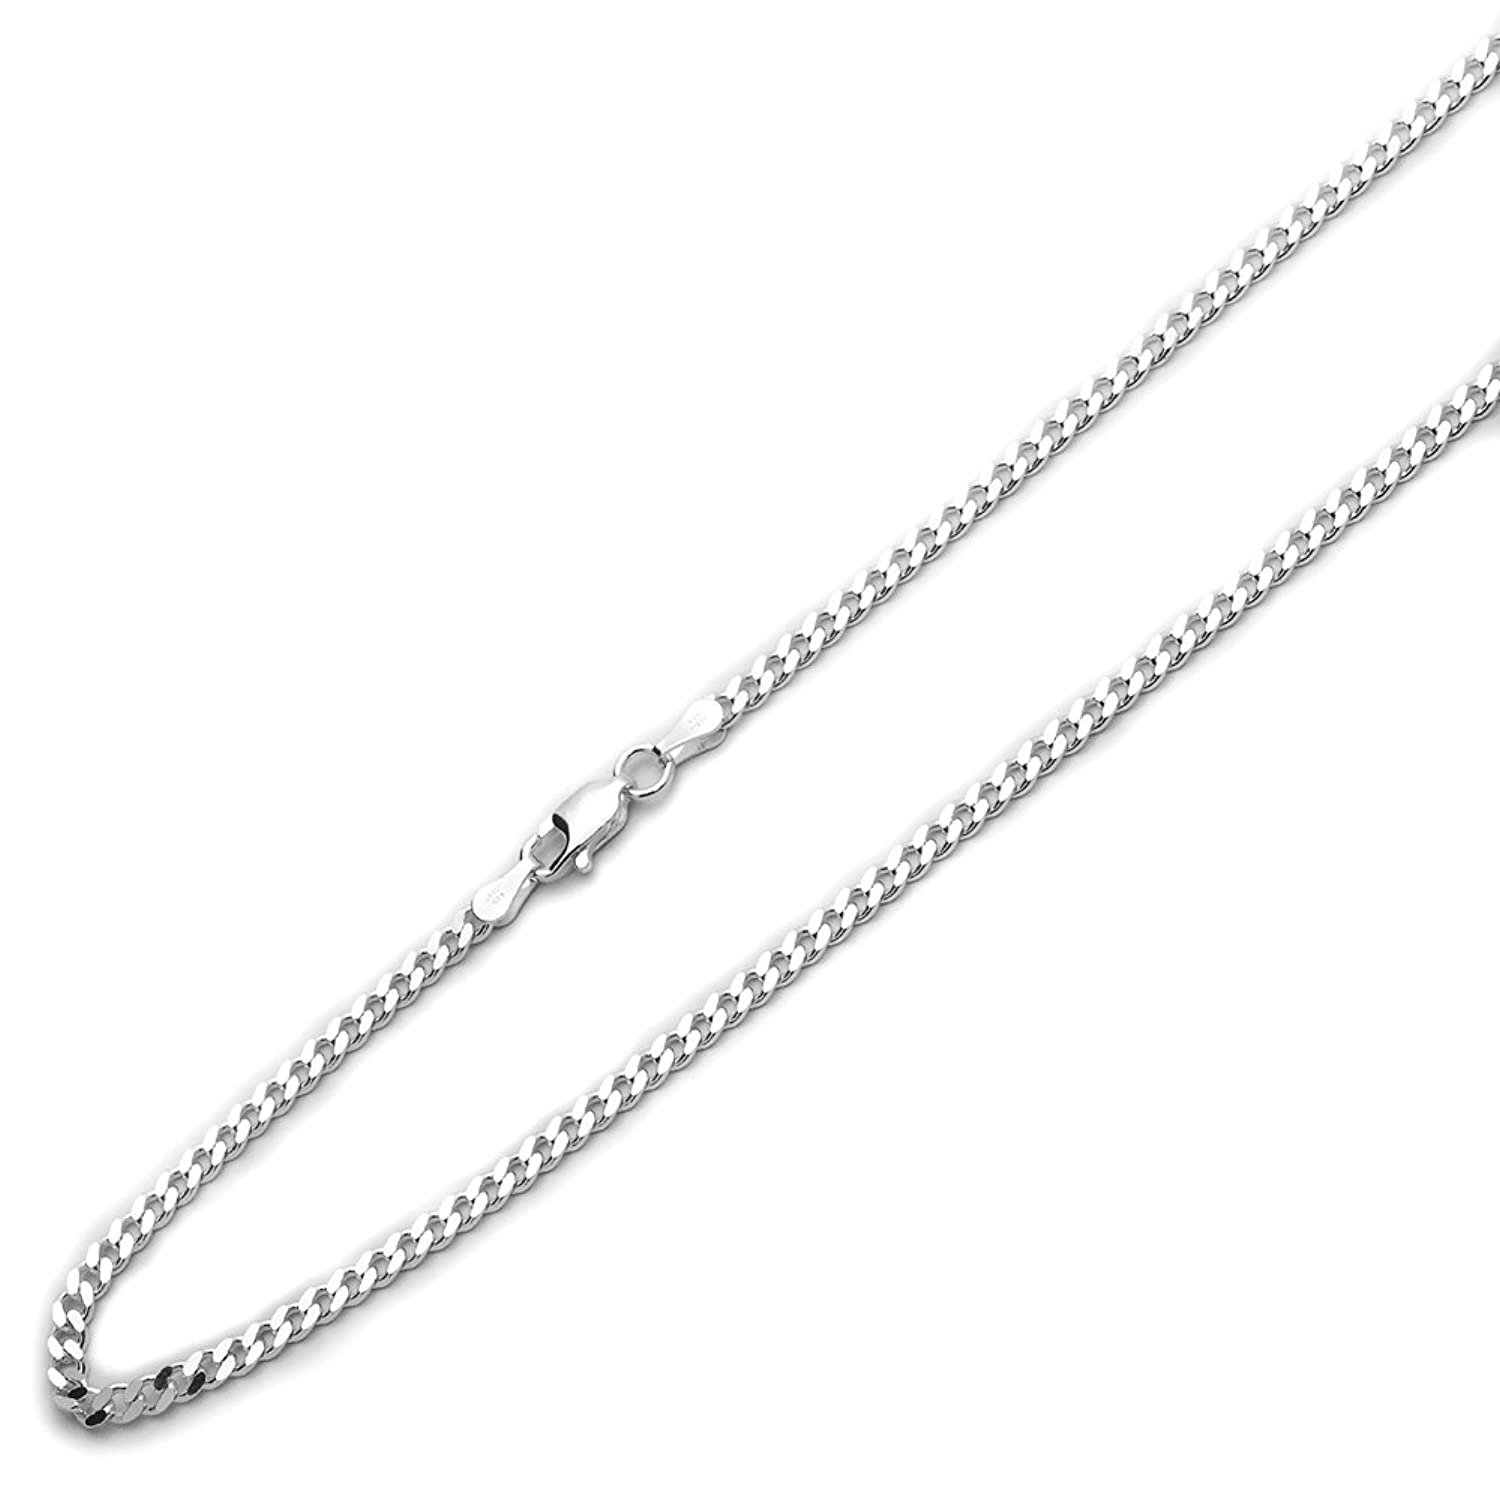 chain silver jewellery the woods eloise products link necklace fullsizeoutput